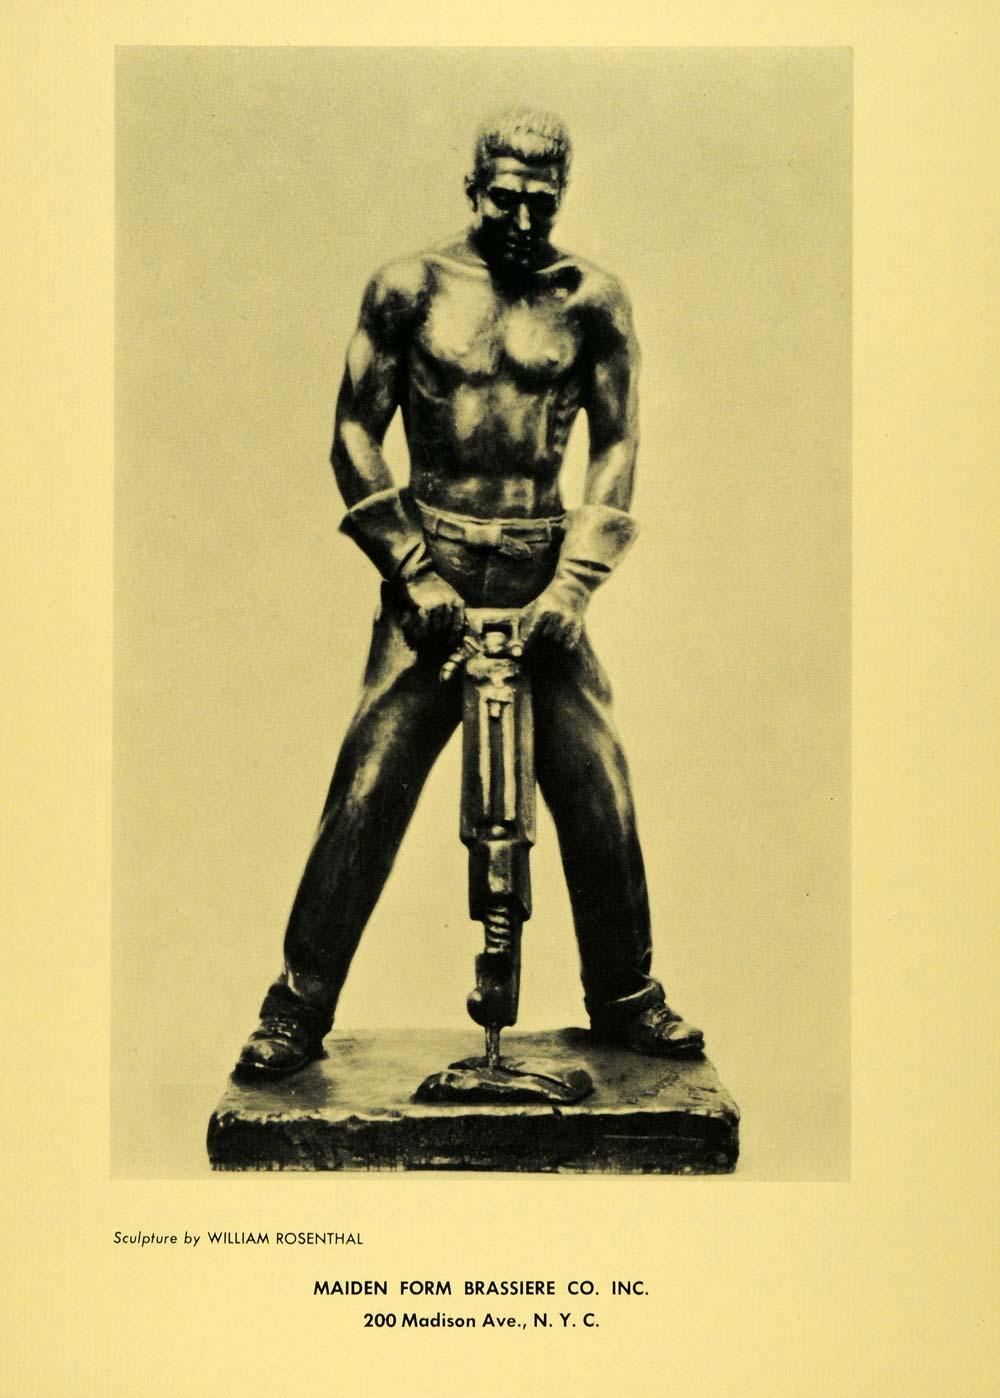 1958 Print William Rosenthal Topless Man Drilling Sculpture Maiden Form AEF7